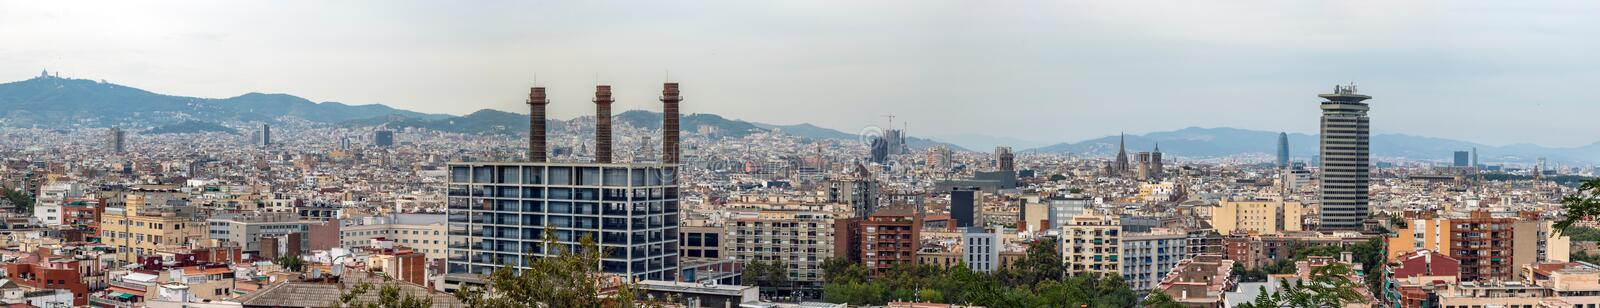 Panoramic view of Barcelona city skyline seen from Montjuic Castle. royalty free stock image